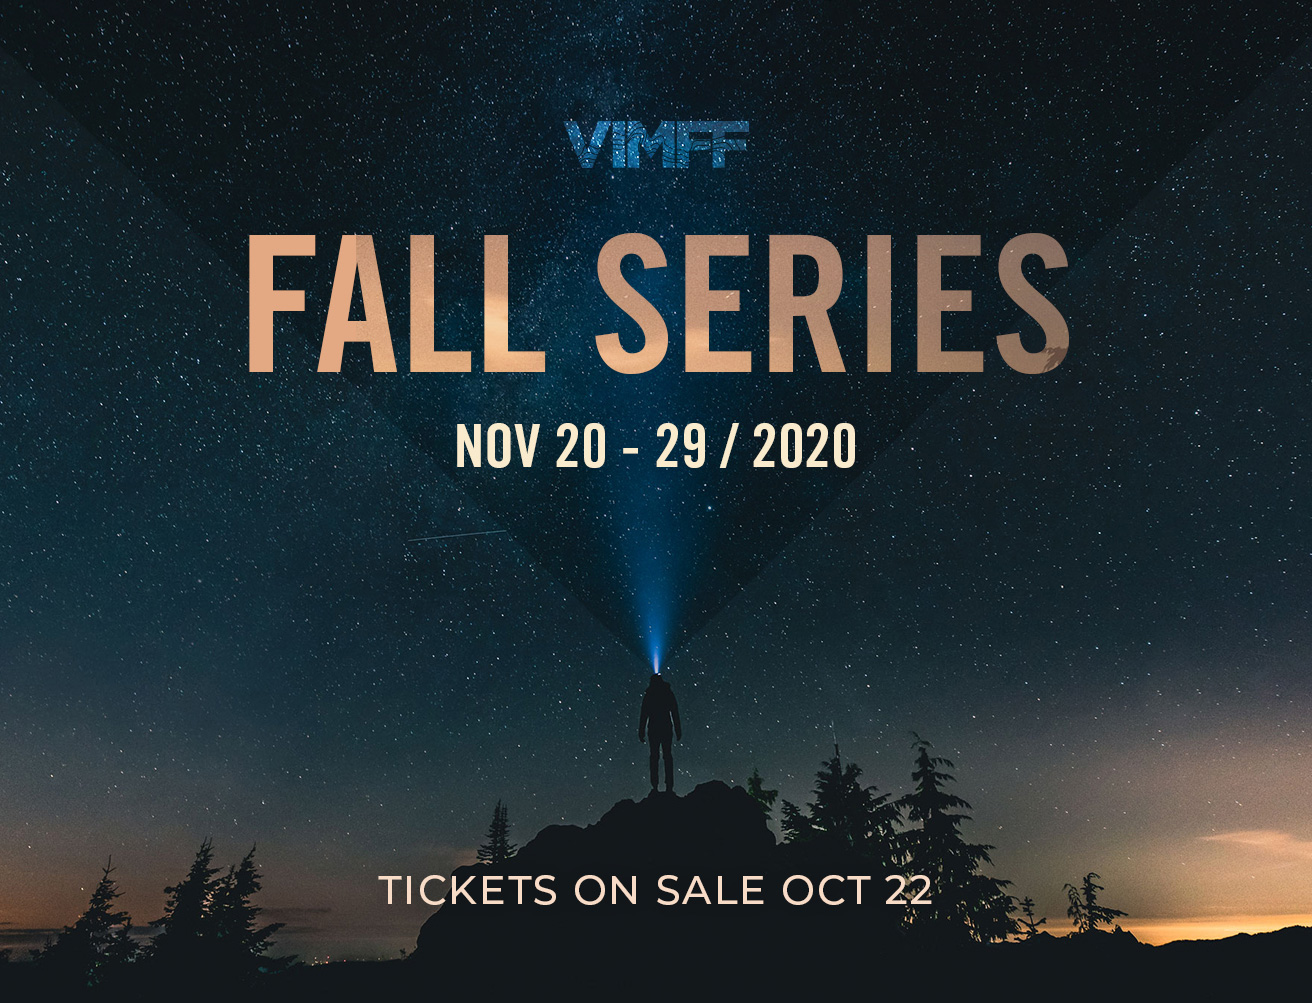 vimff fall series online cta tickets launch date